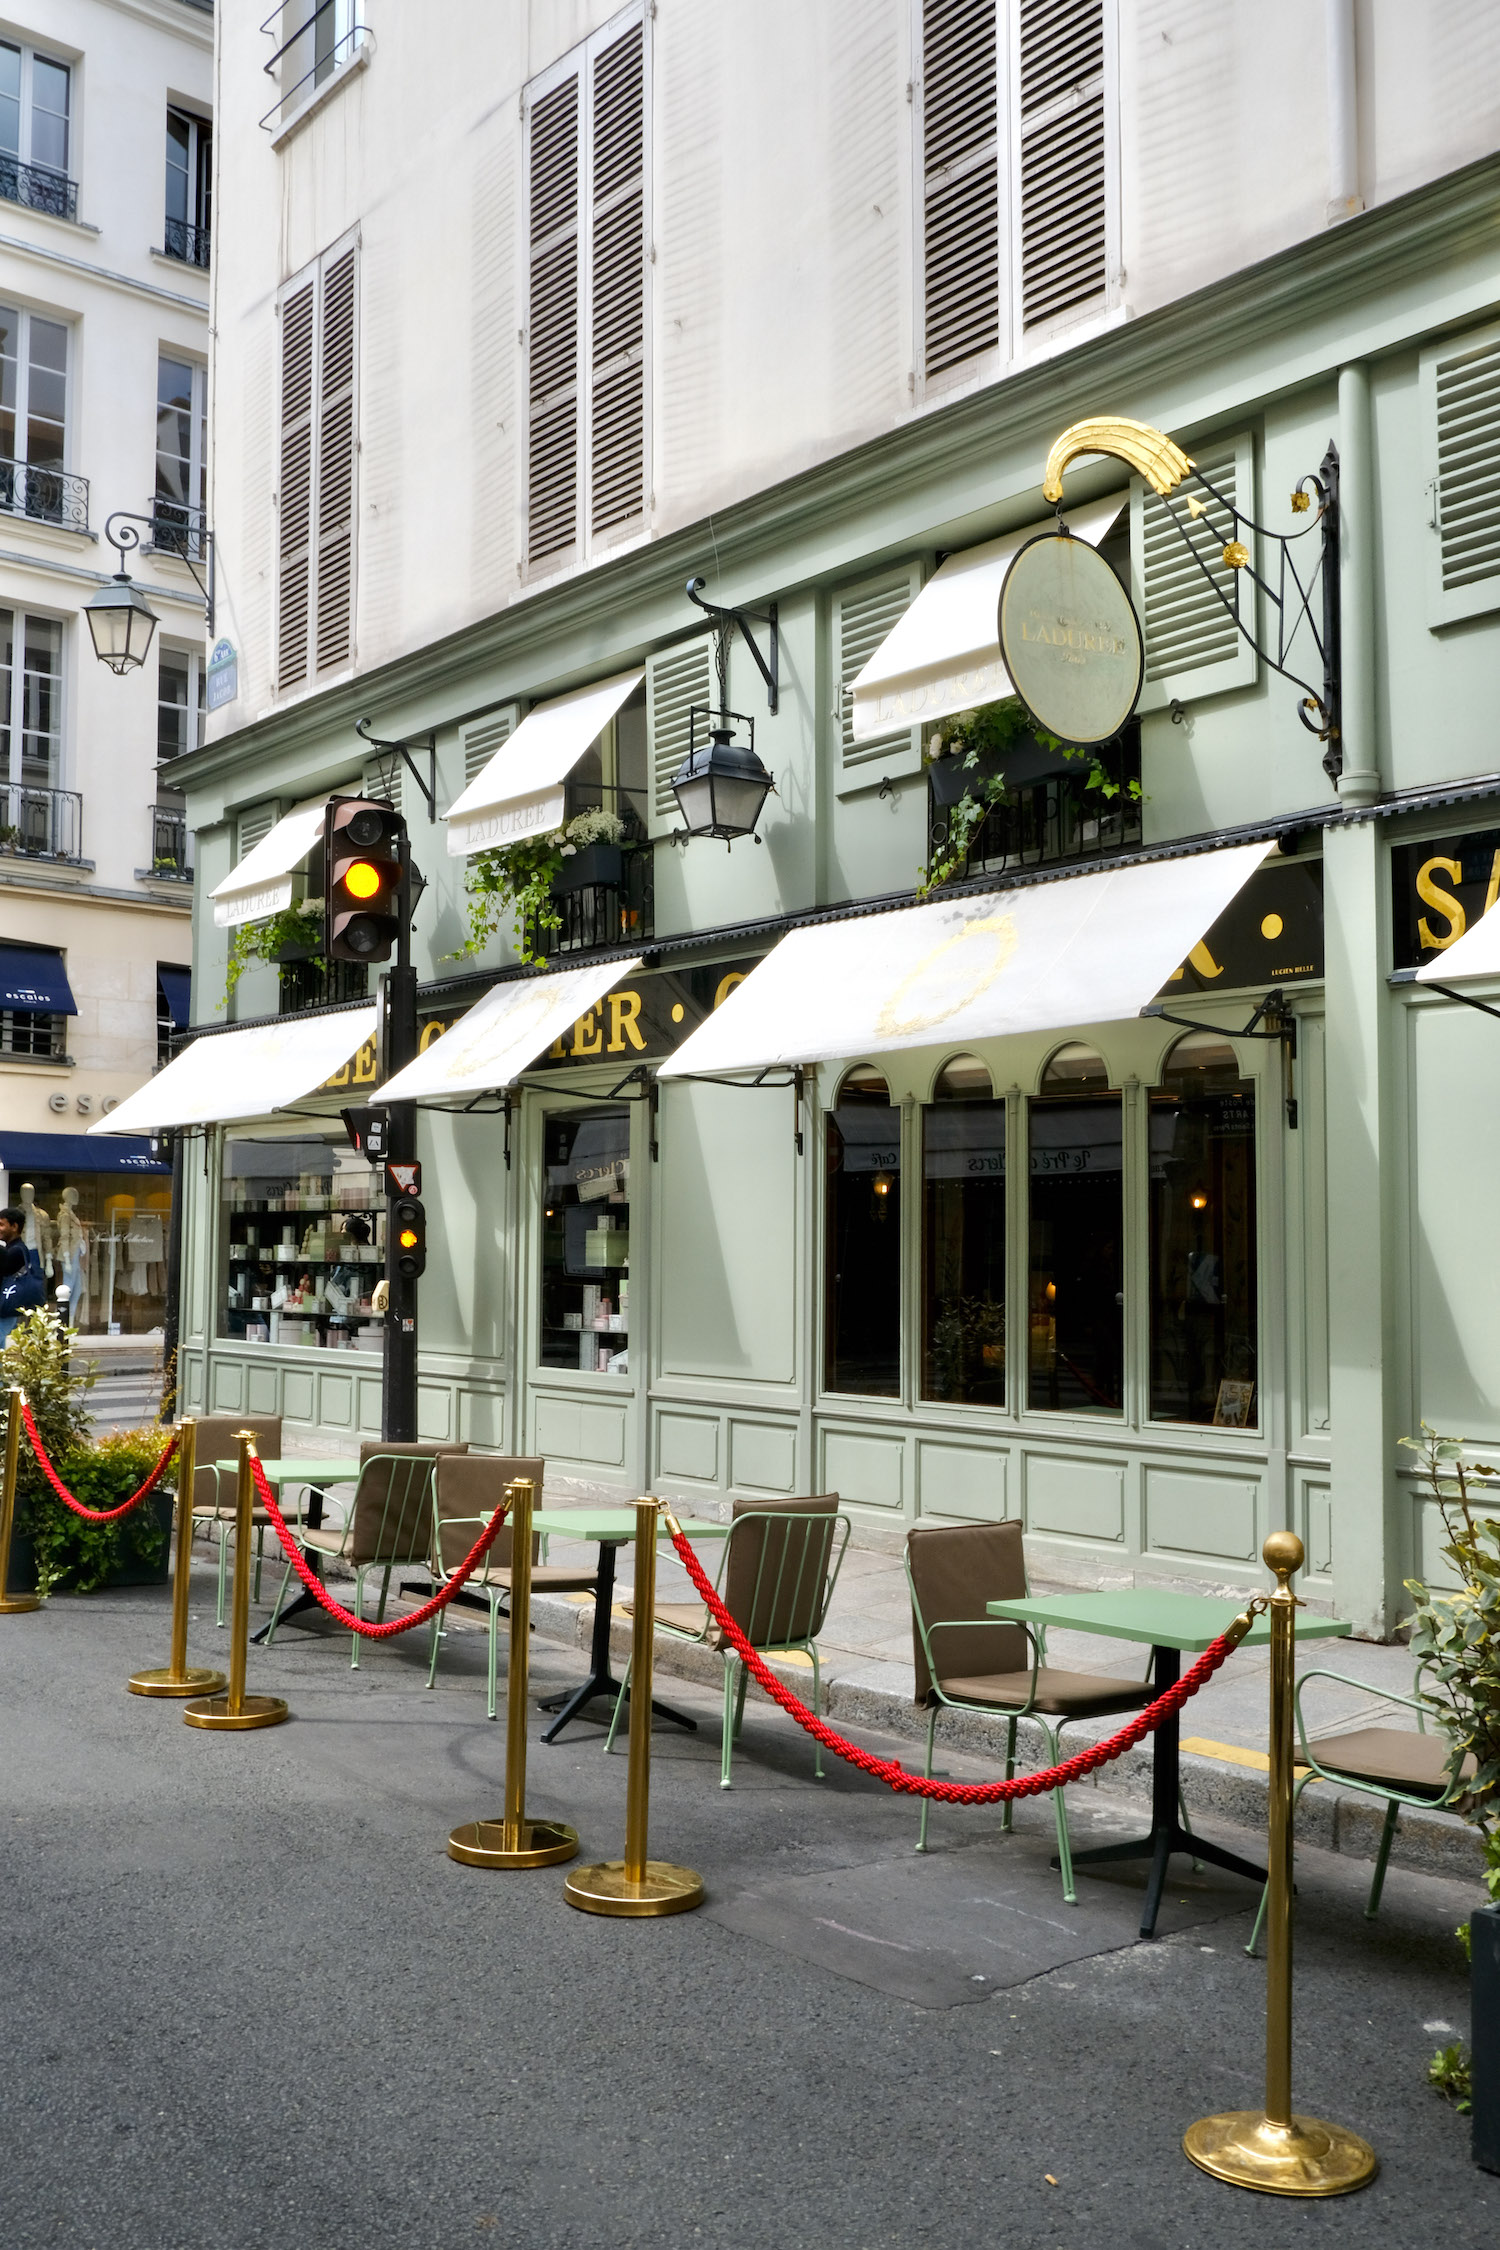 Ladurée Bonaparte's new temporary terrasse